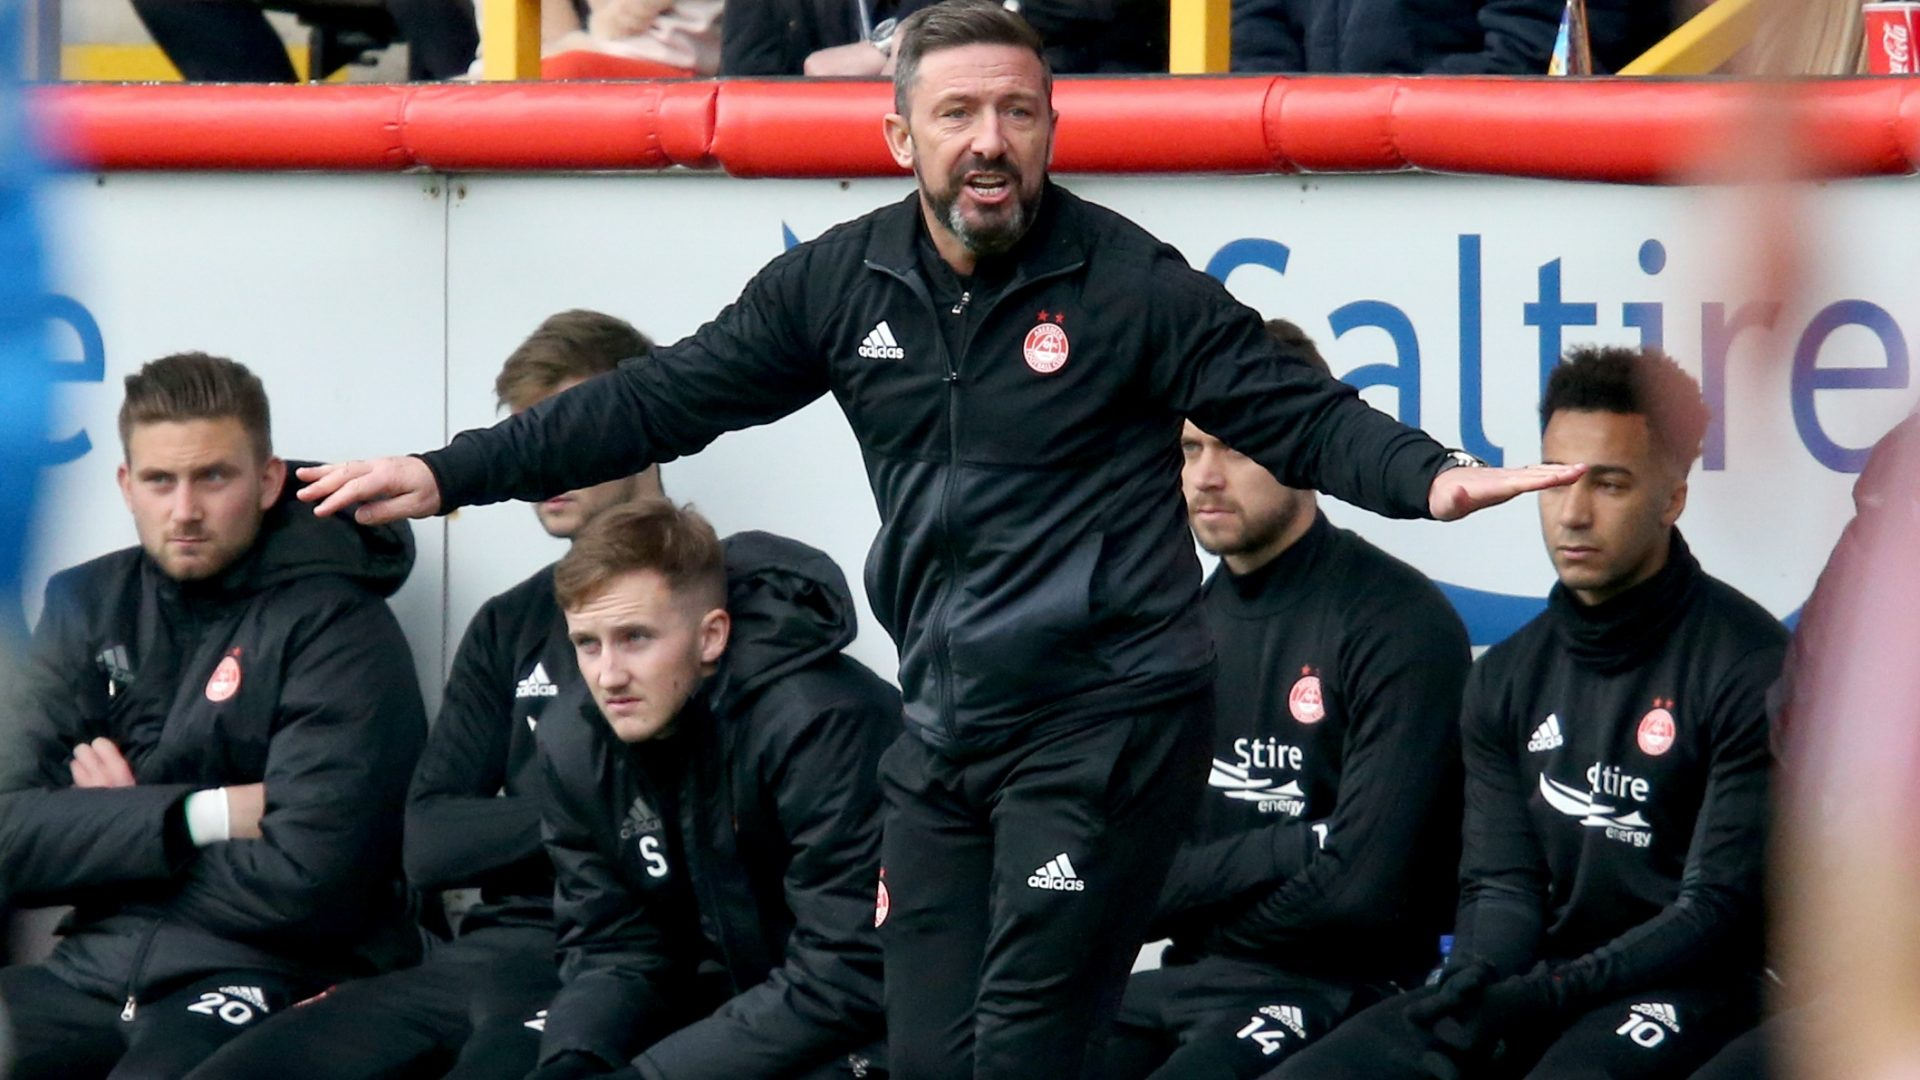 Derek McInnes has decided to stay at Aberdeen after rejecting Rangers